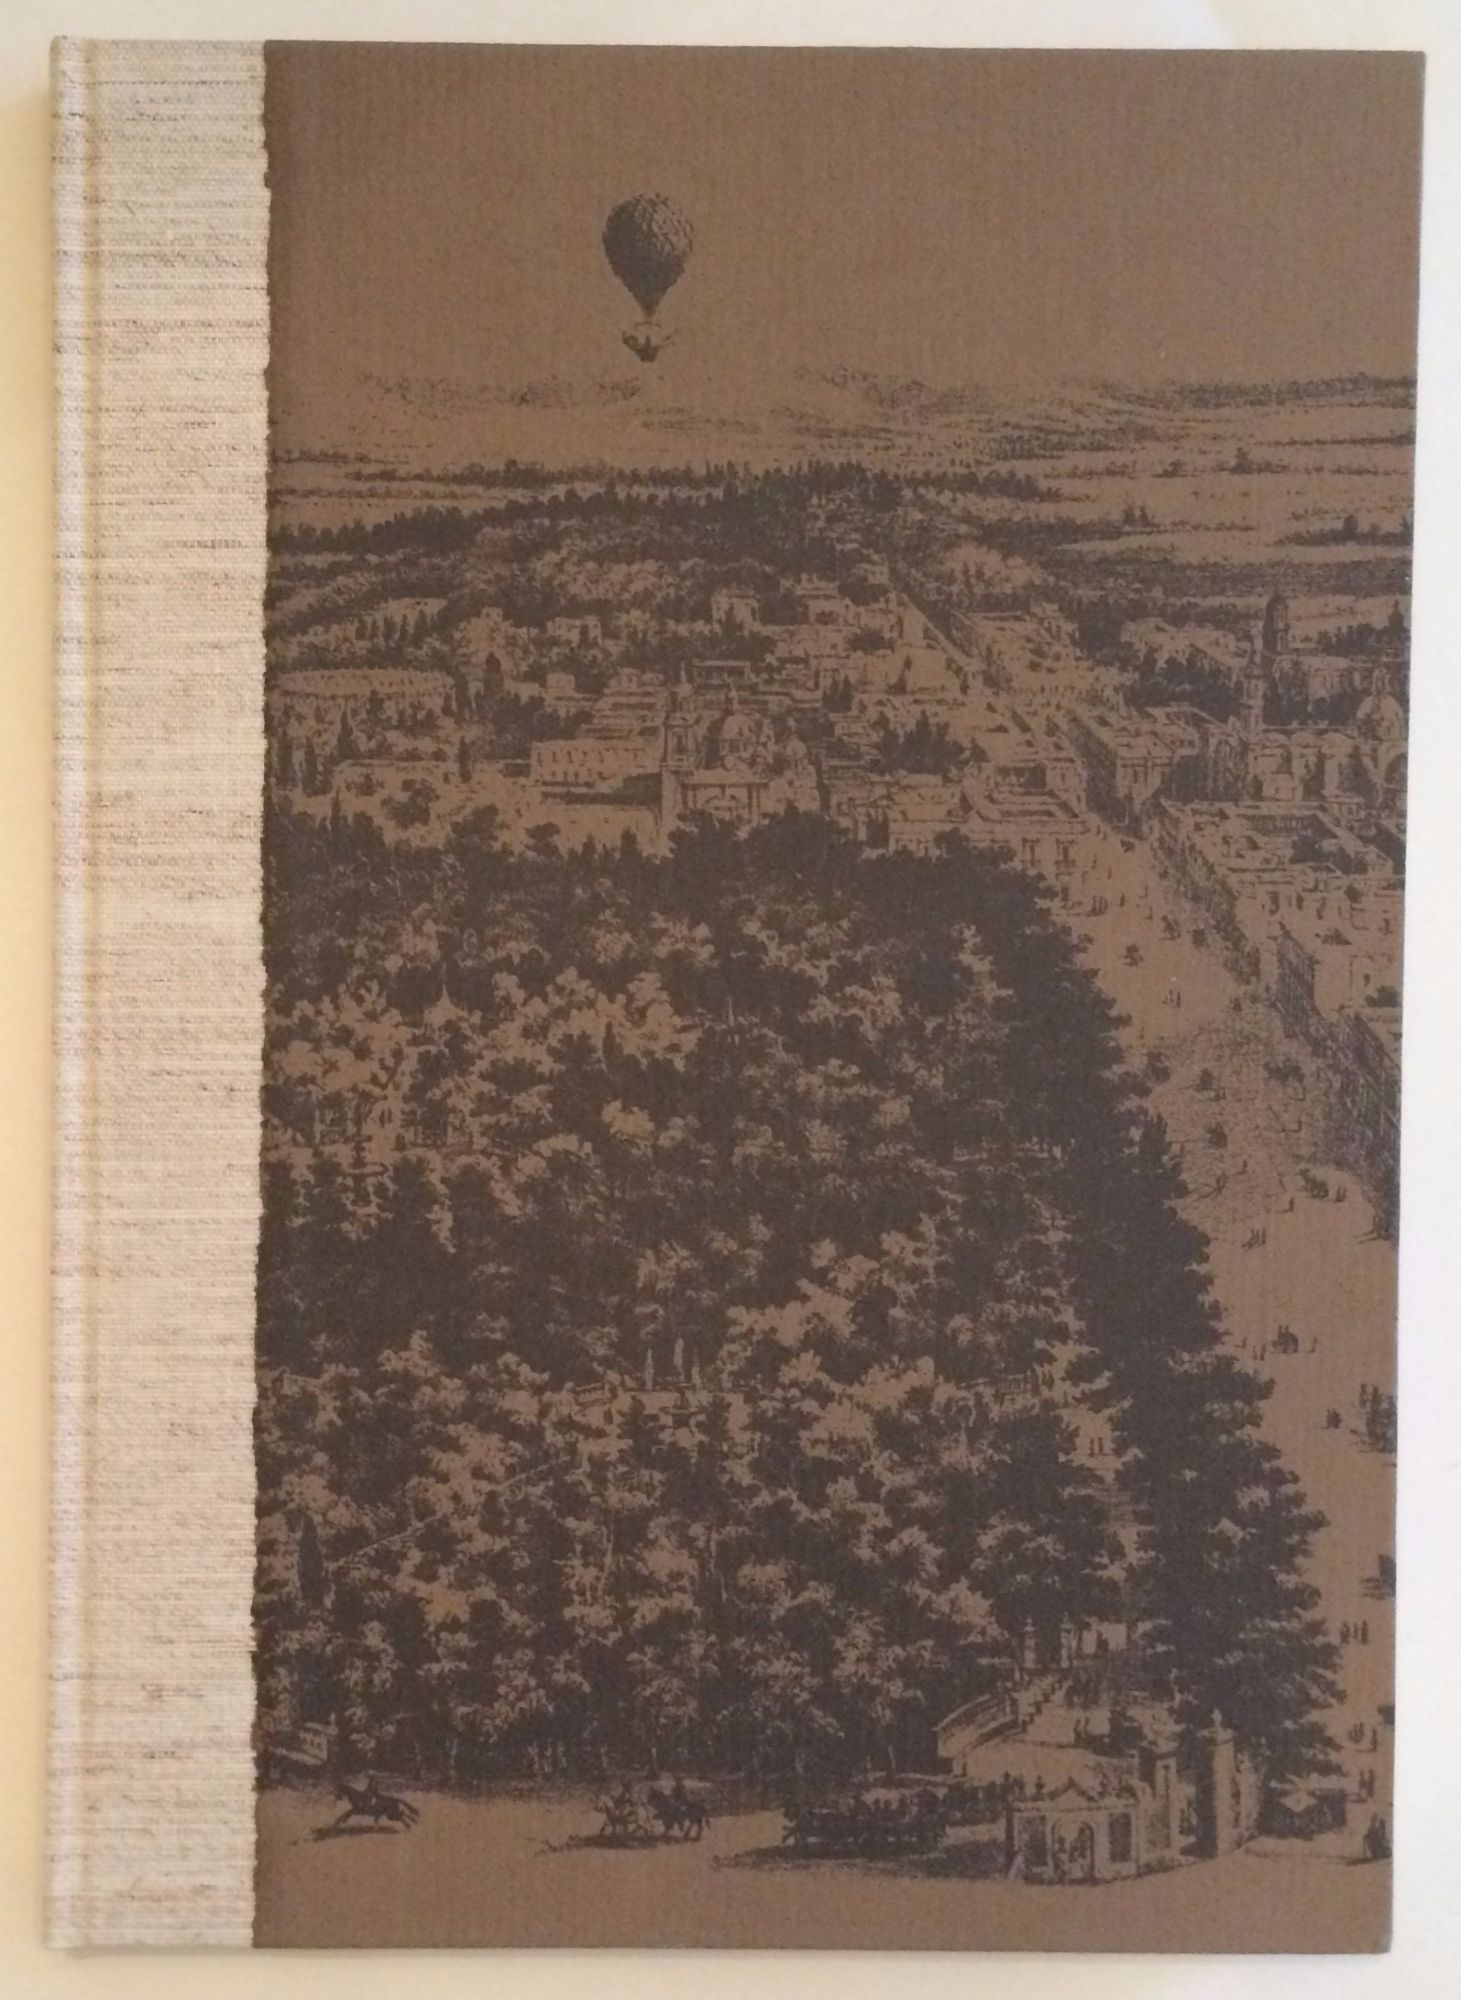 Mexico On Stone. Lithography In Mexico, 1826-1900. W. Michael Mathes.